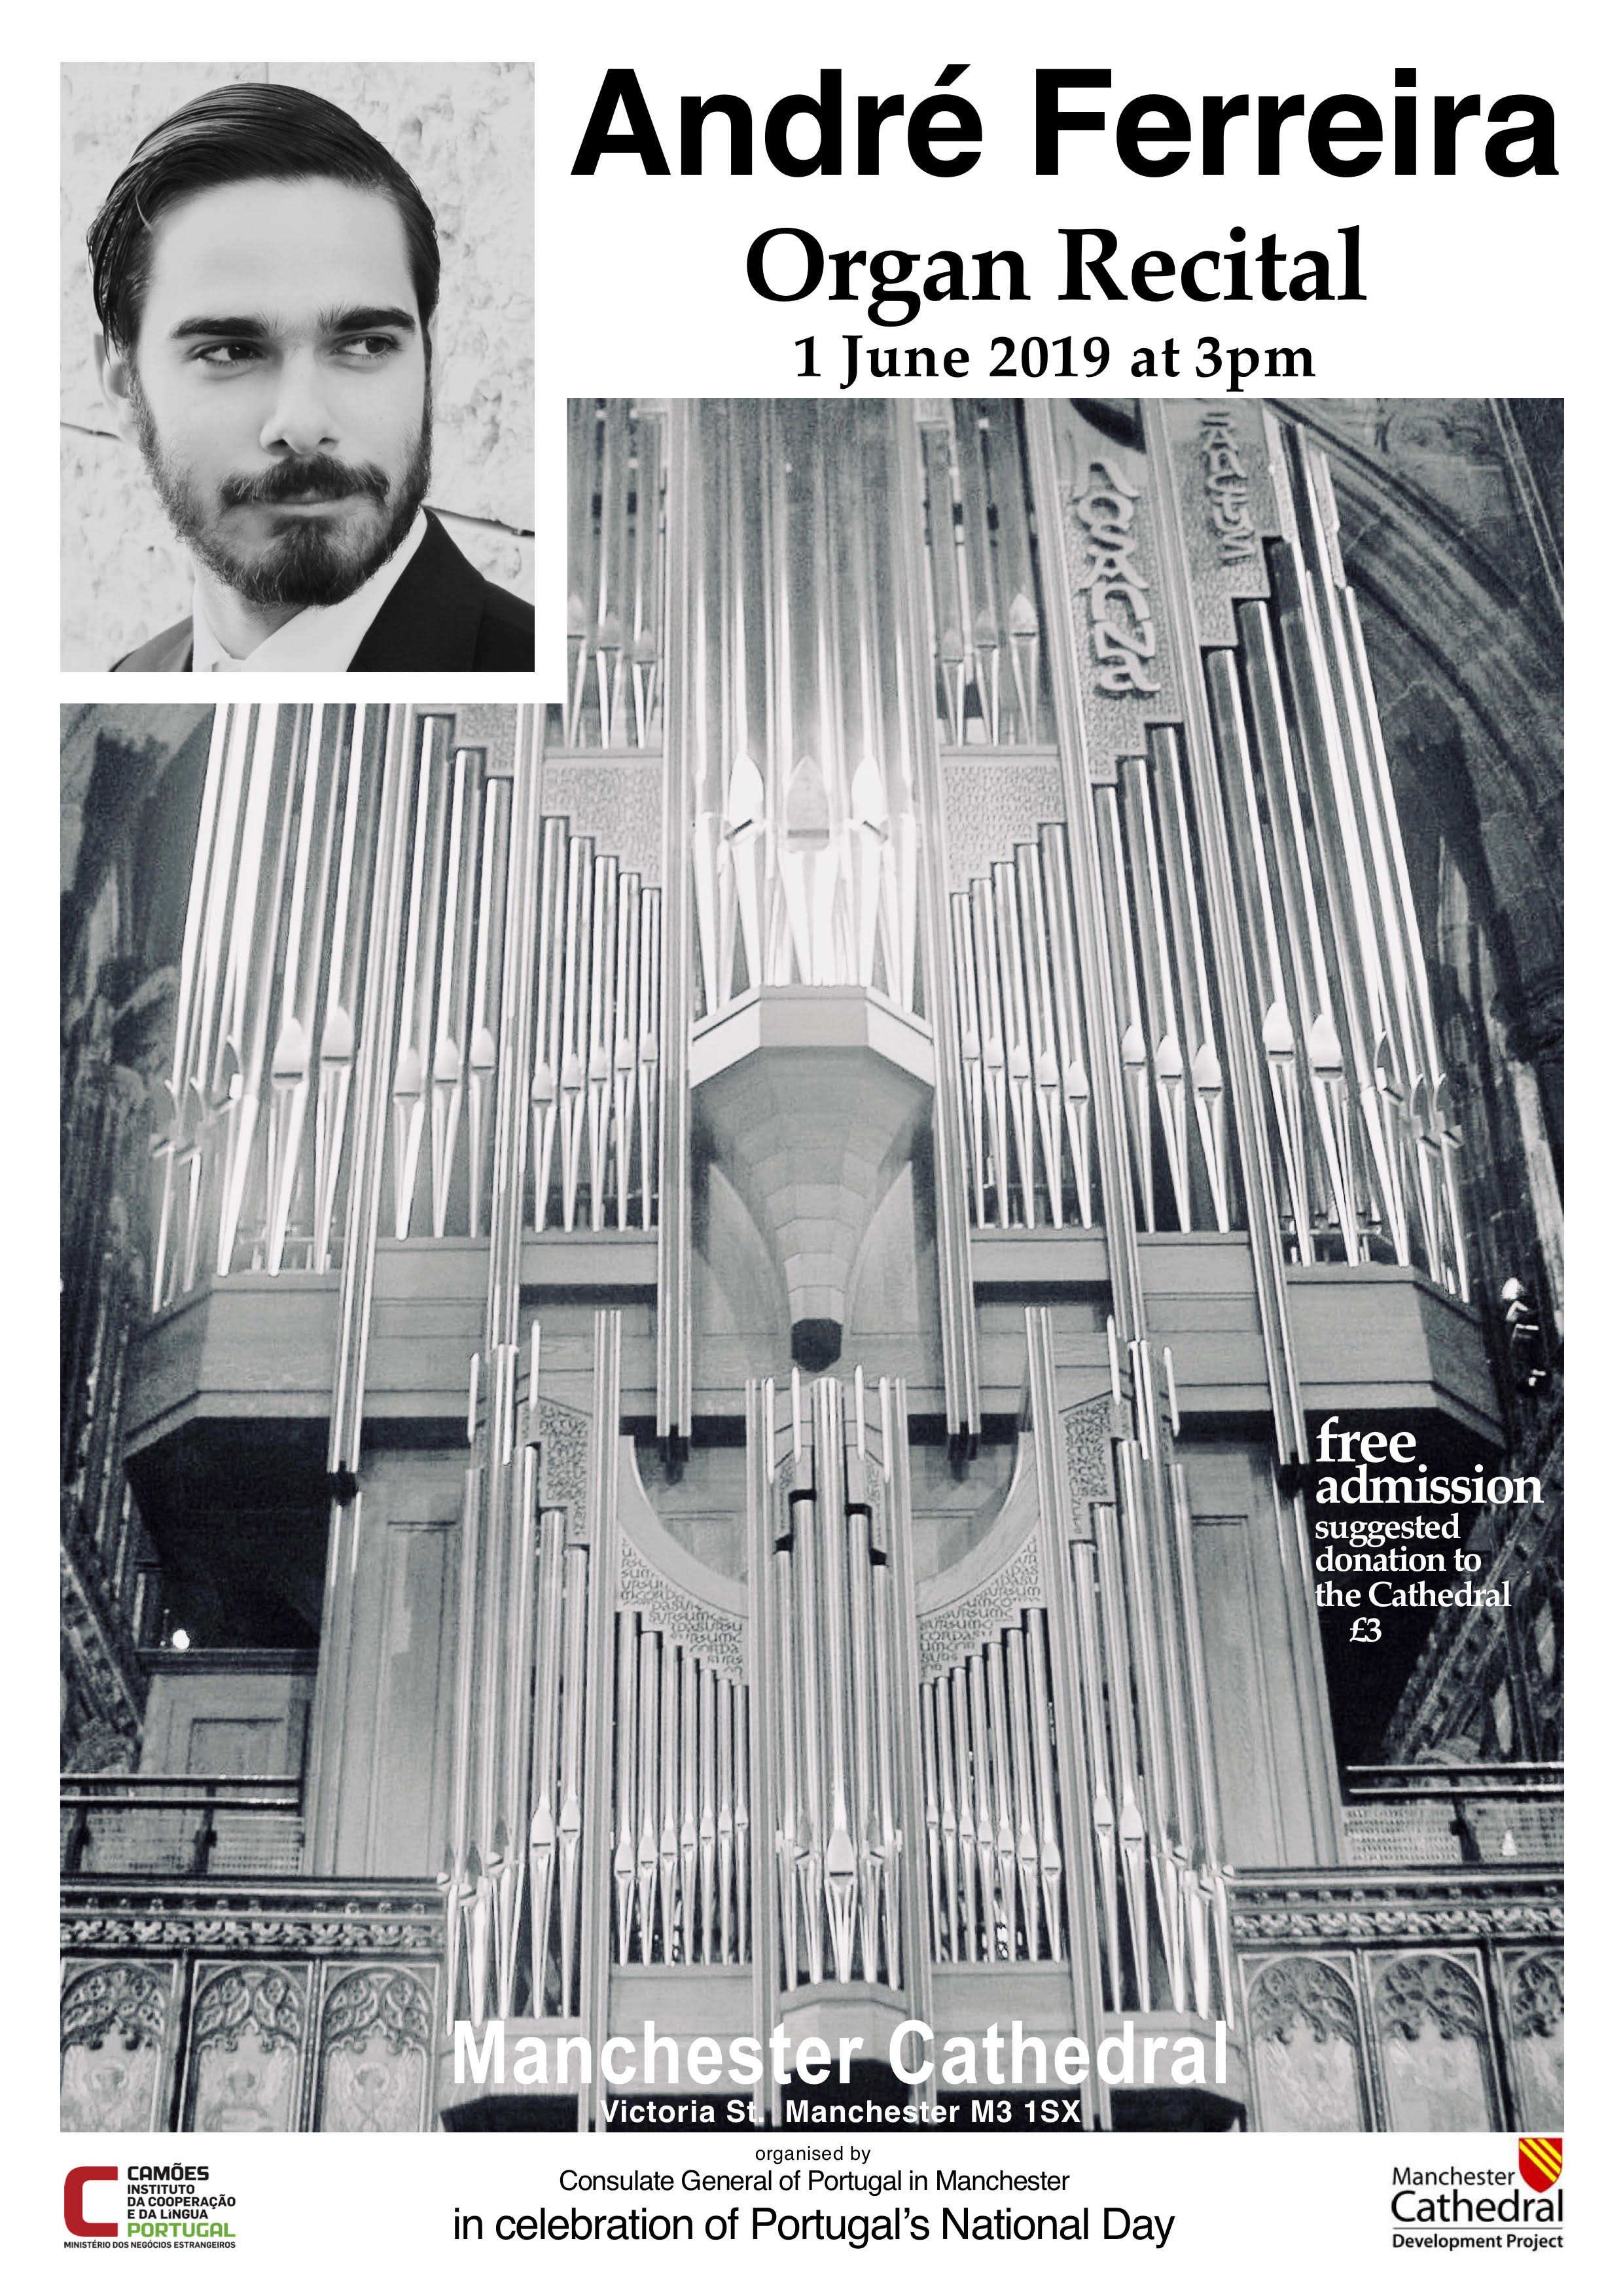 organ recital 1 june 2019